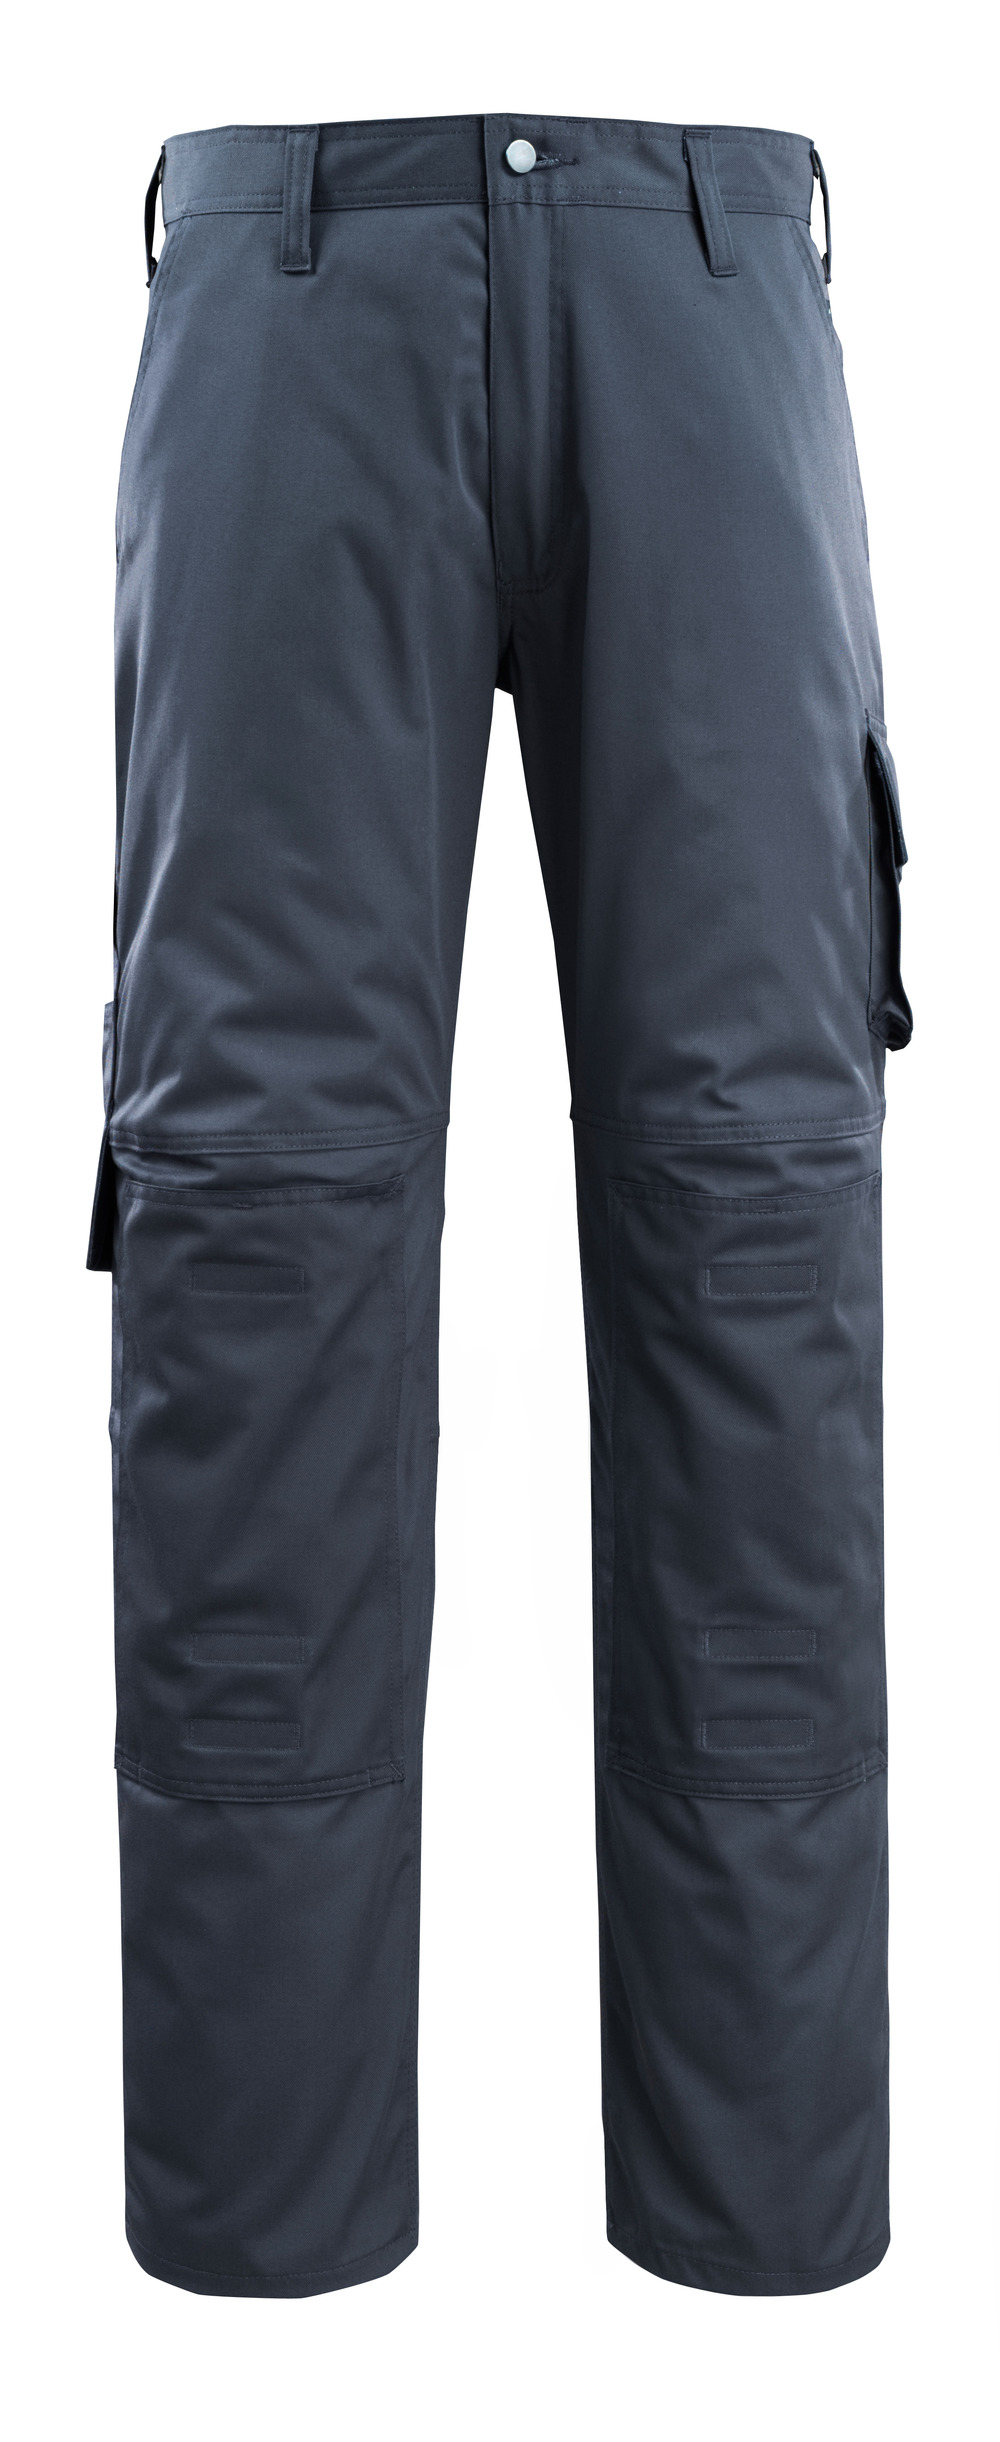 14379-850-010 Trousers with kneepad pockets - dark navy